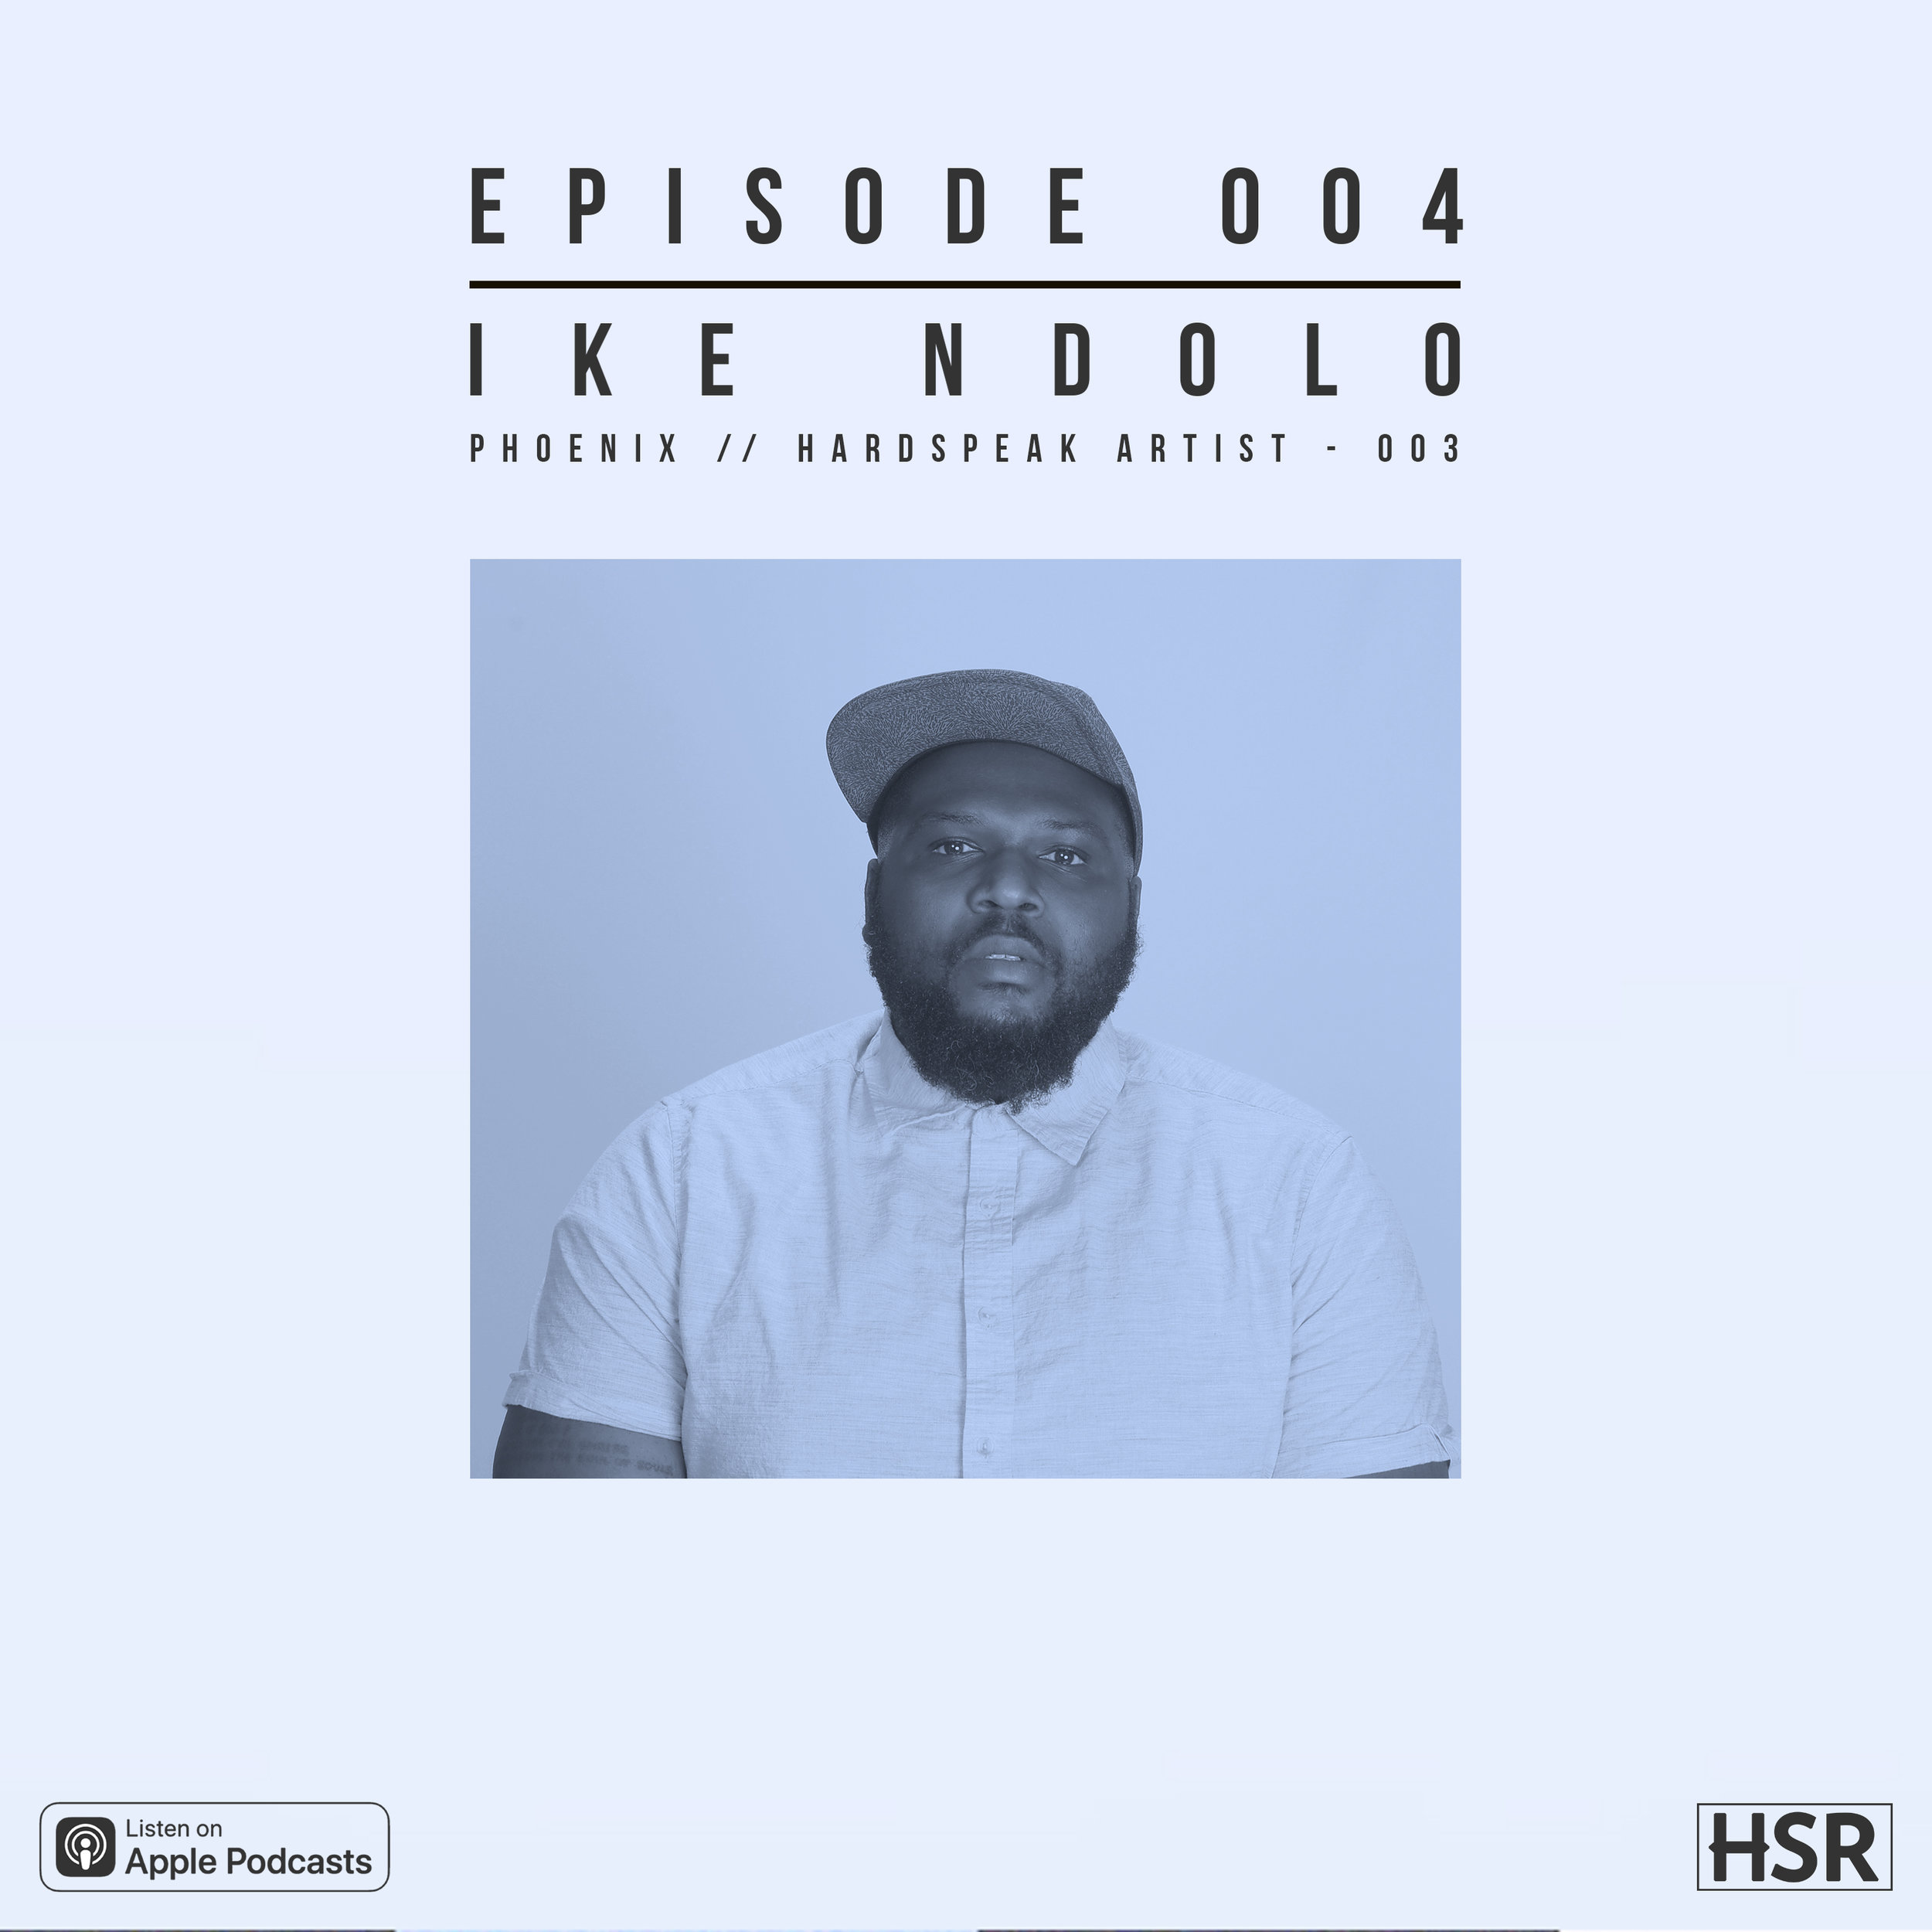 Ike Ndolo - is the third artist of Hardspeak Records. In this episode, we talk about Ike's musical shift as an artist, and what to expect from him in the new year.Episode 004 is sponsored by Olivina Men